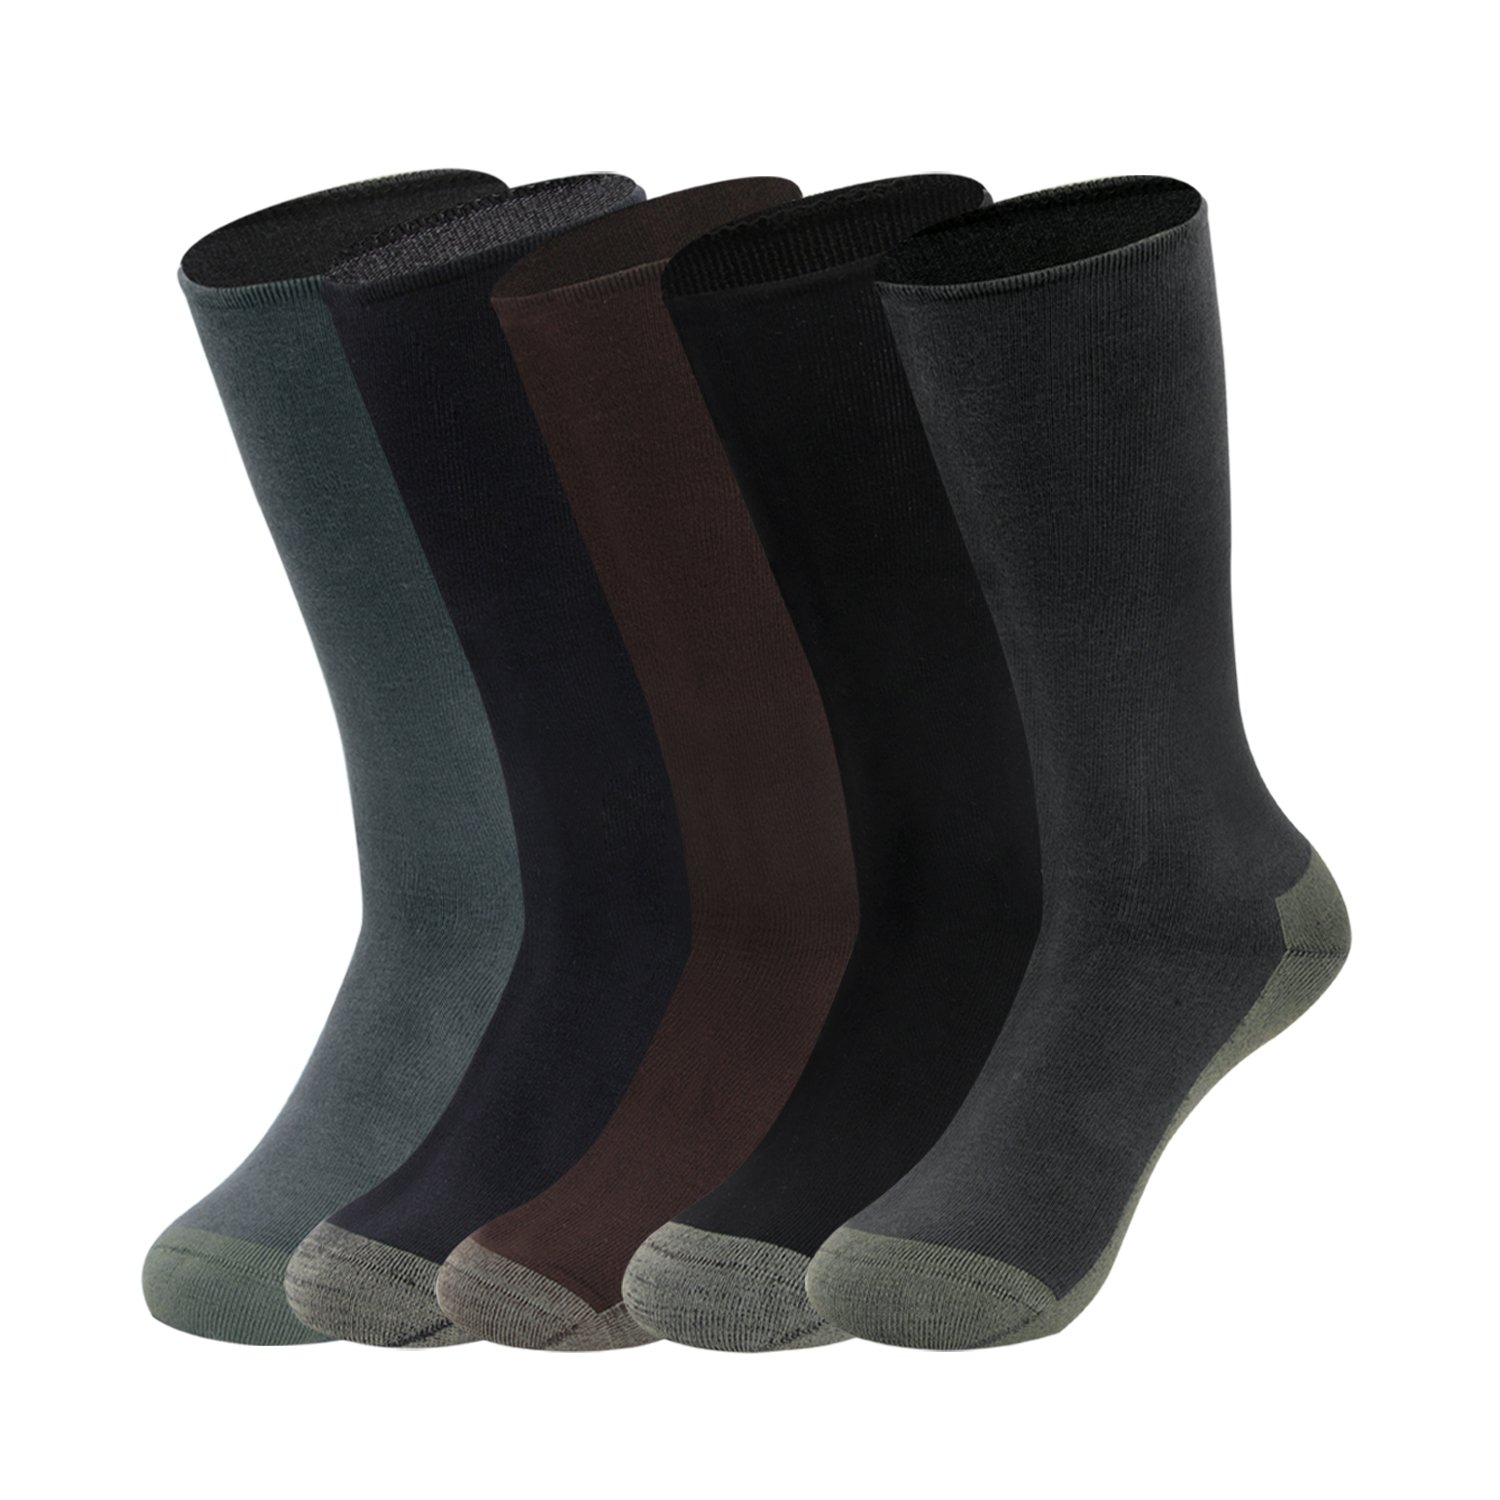 gather copper antimicrobial socks